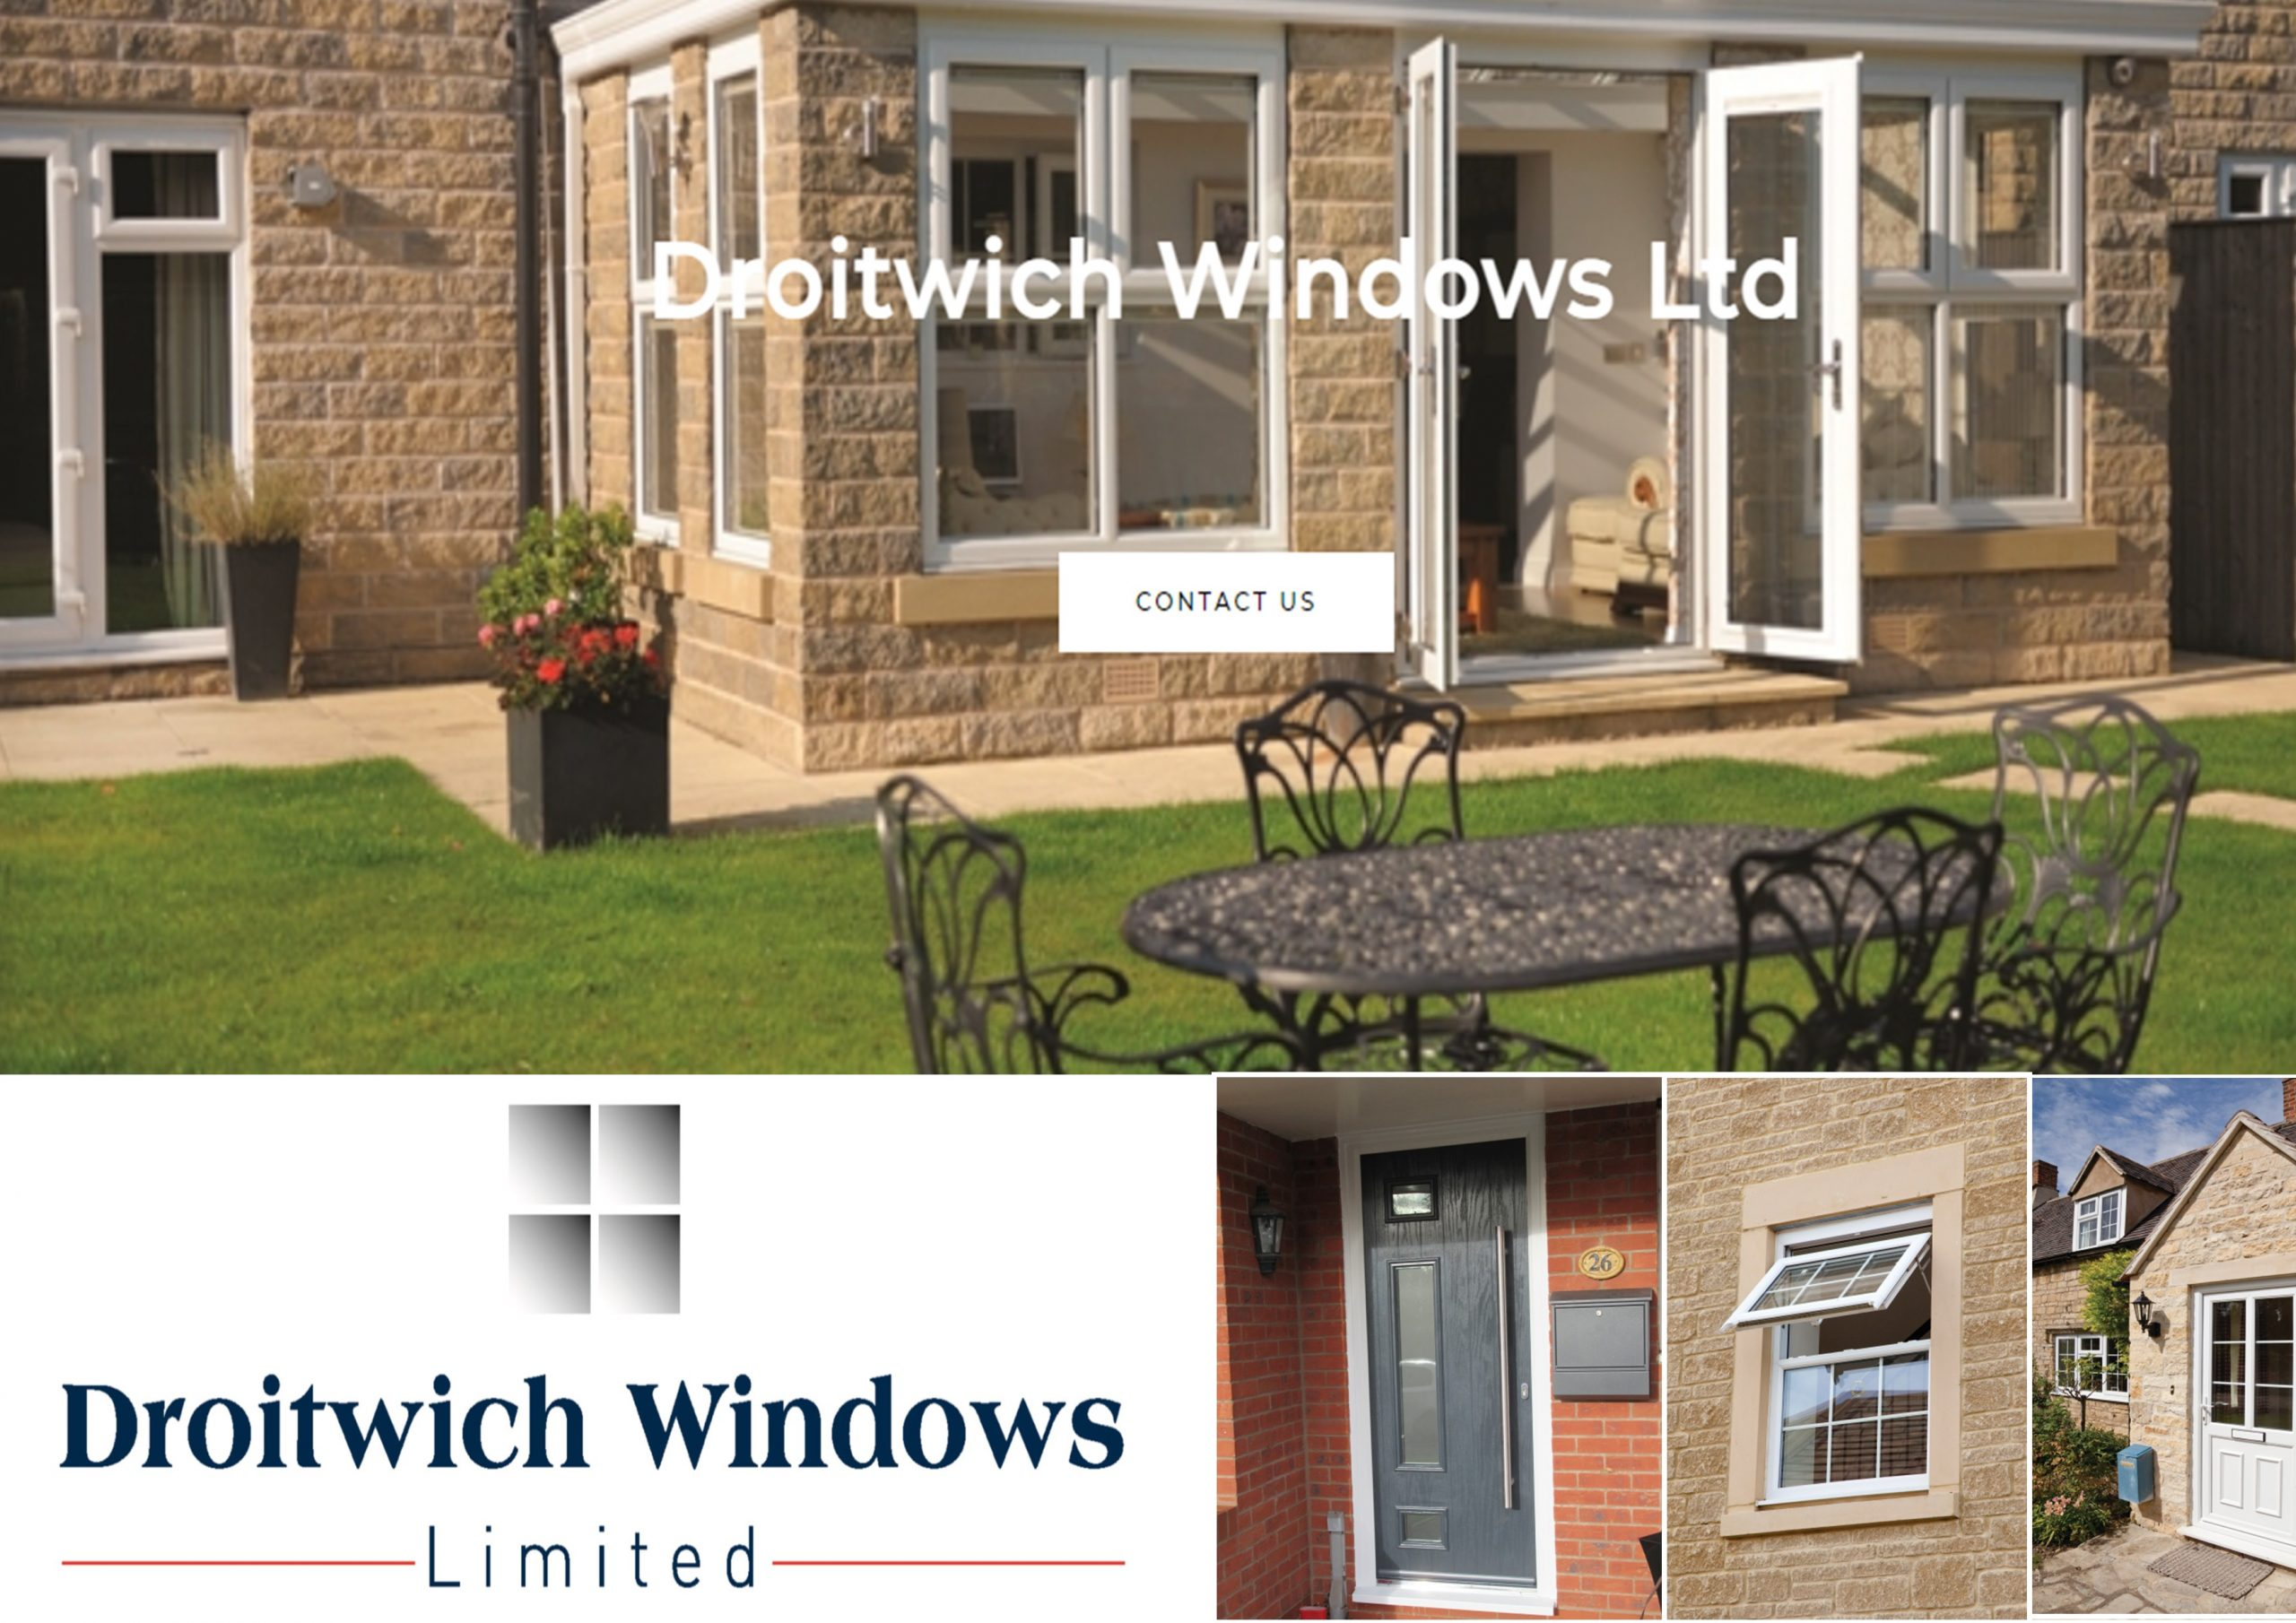 droitwich windows limited